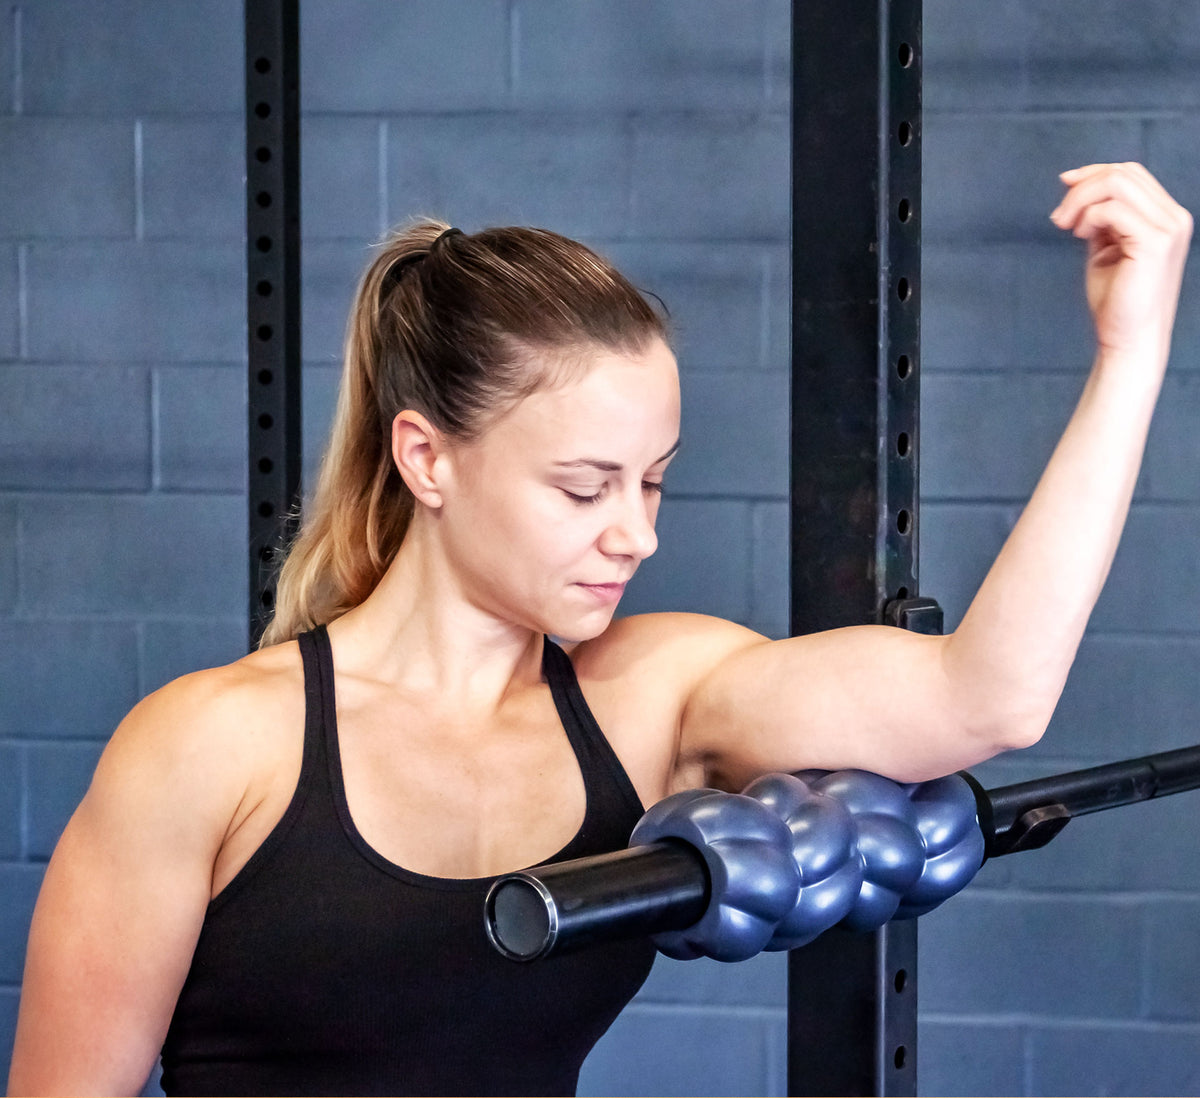 A fit woman rolling her triceps muscles with a barbell roller in a squat rack.